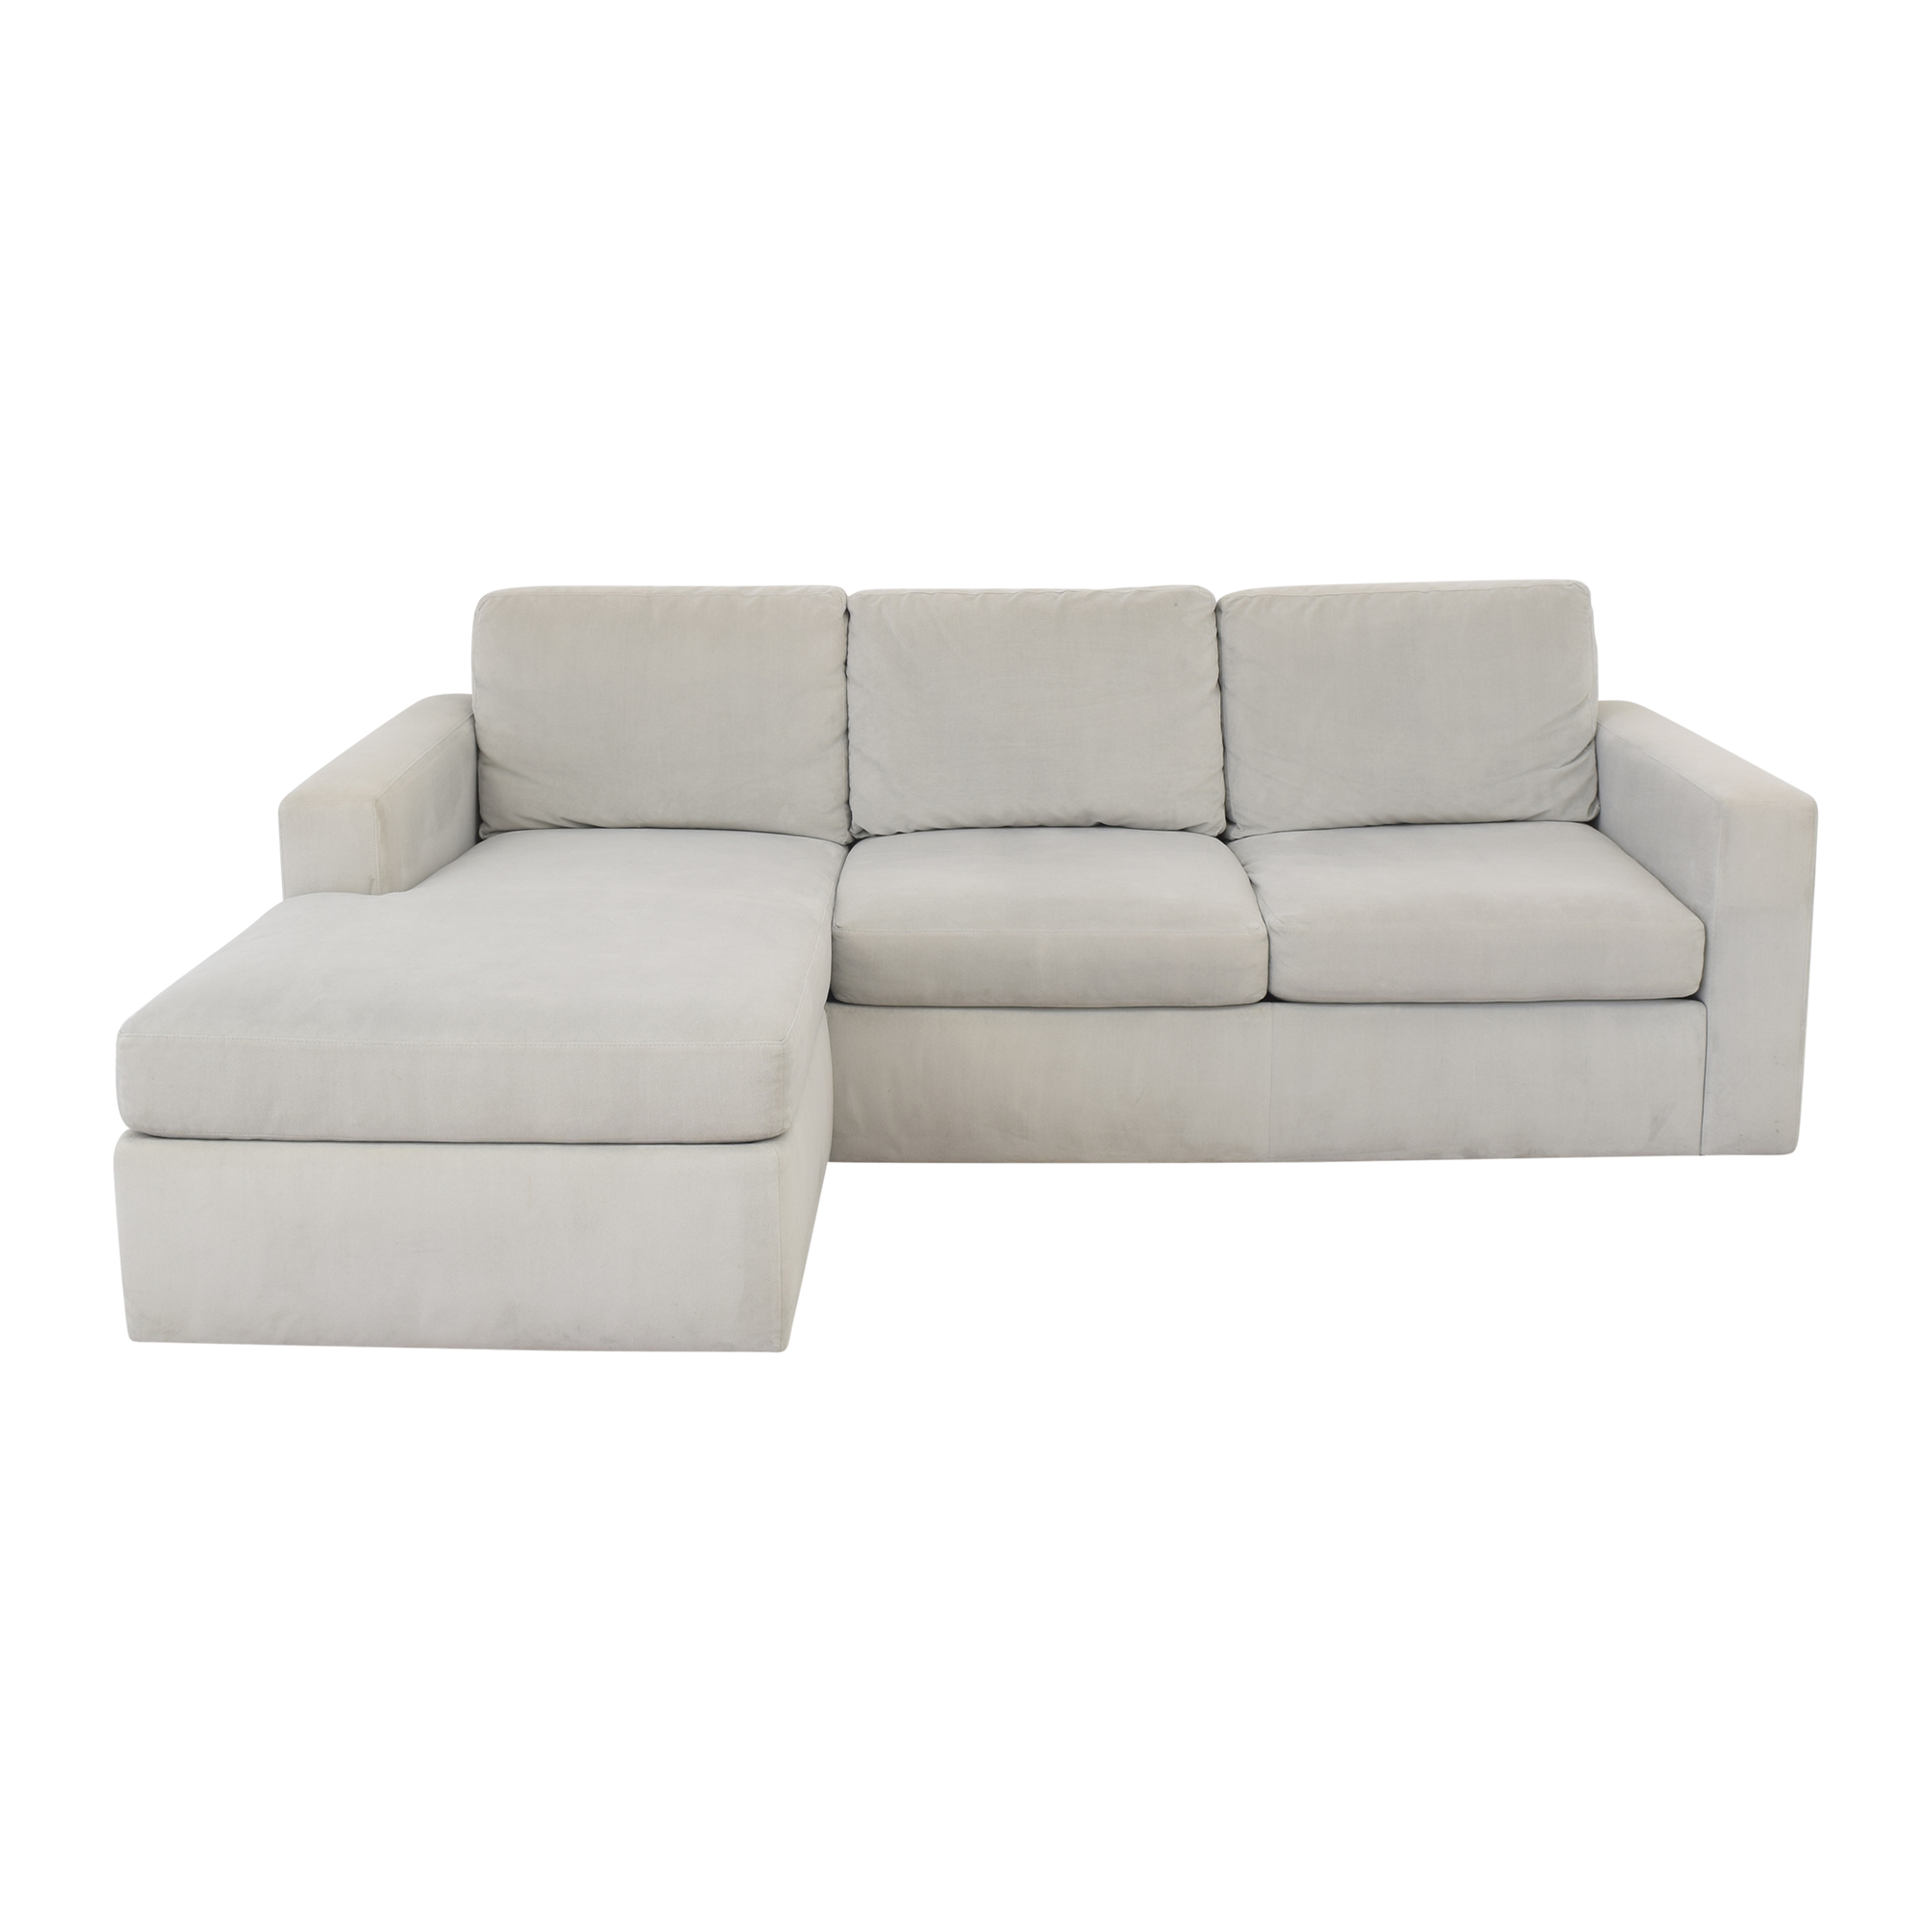 Room & Board Room & Board Taft Sofa with Chaise on sale